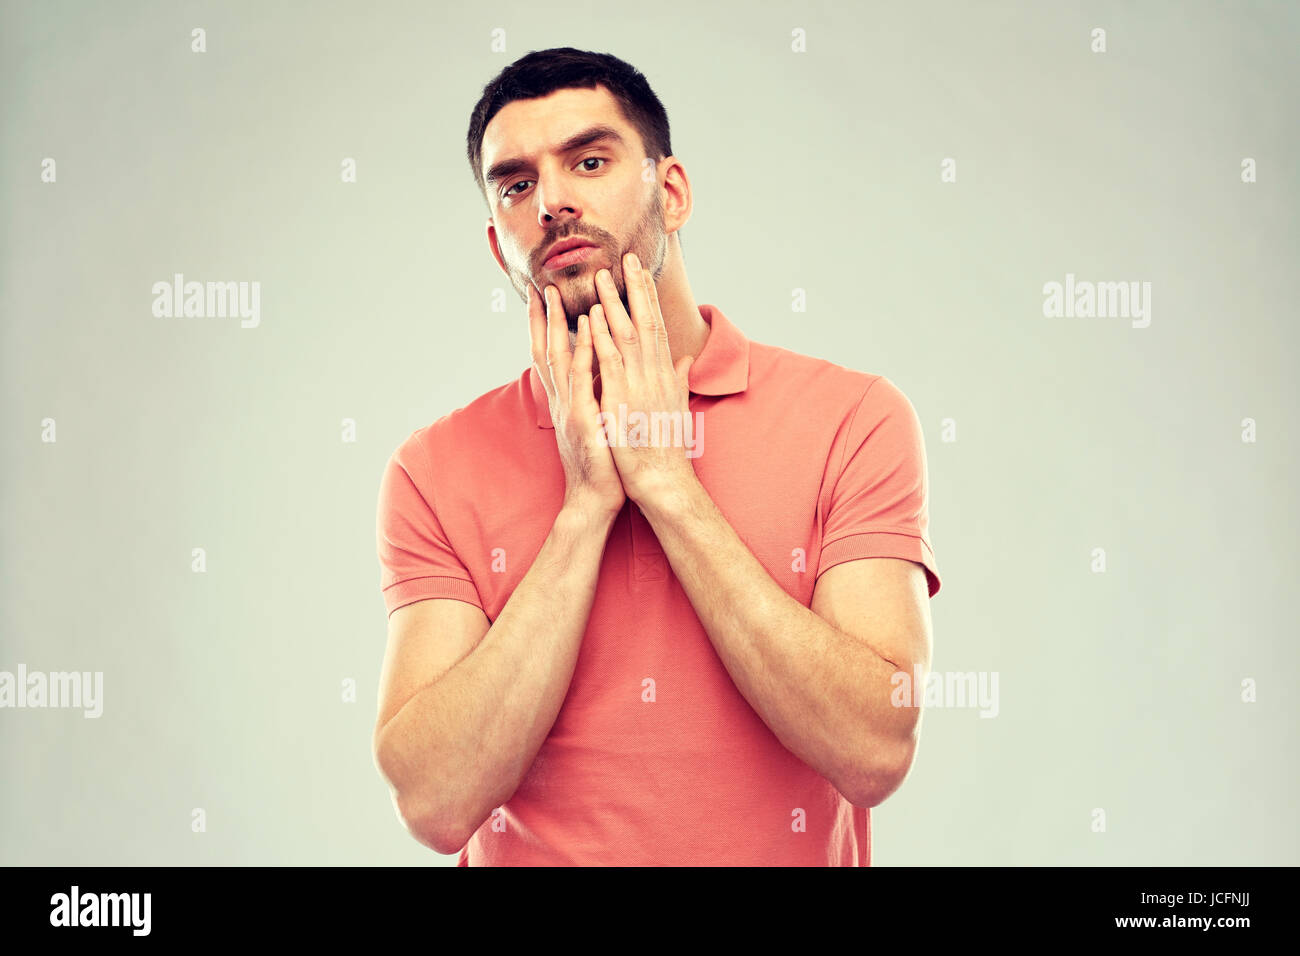 young man touching his face over gray background - Stock Image